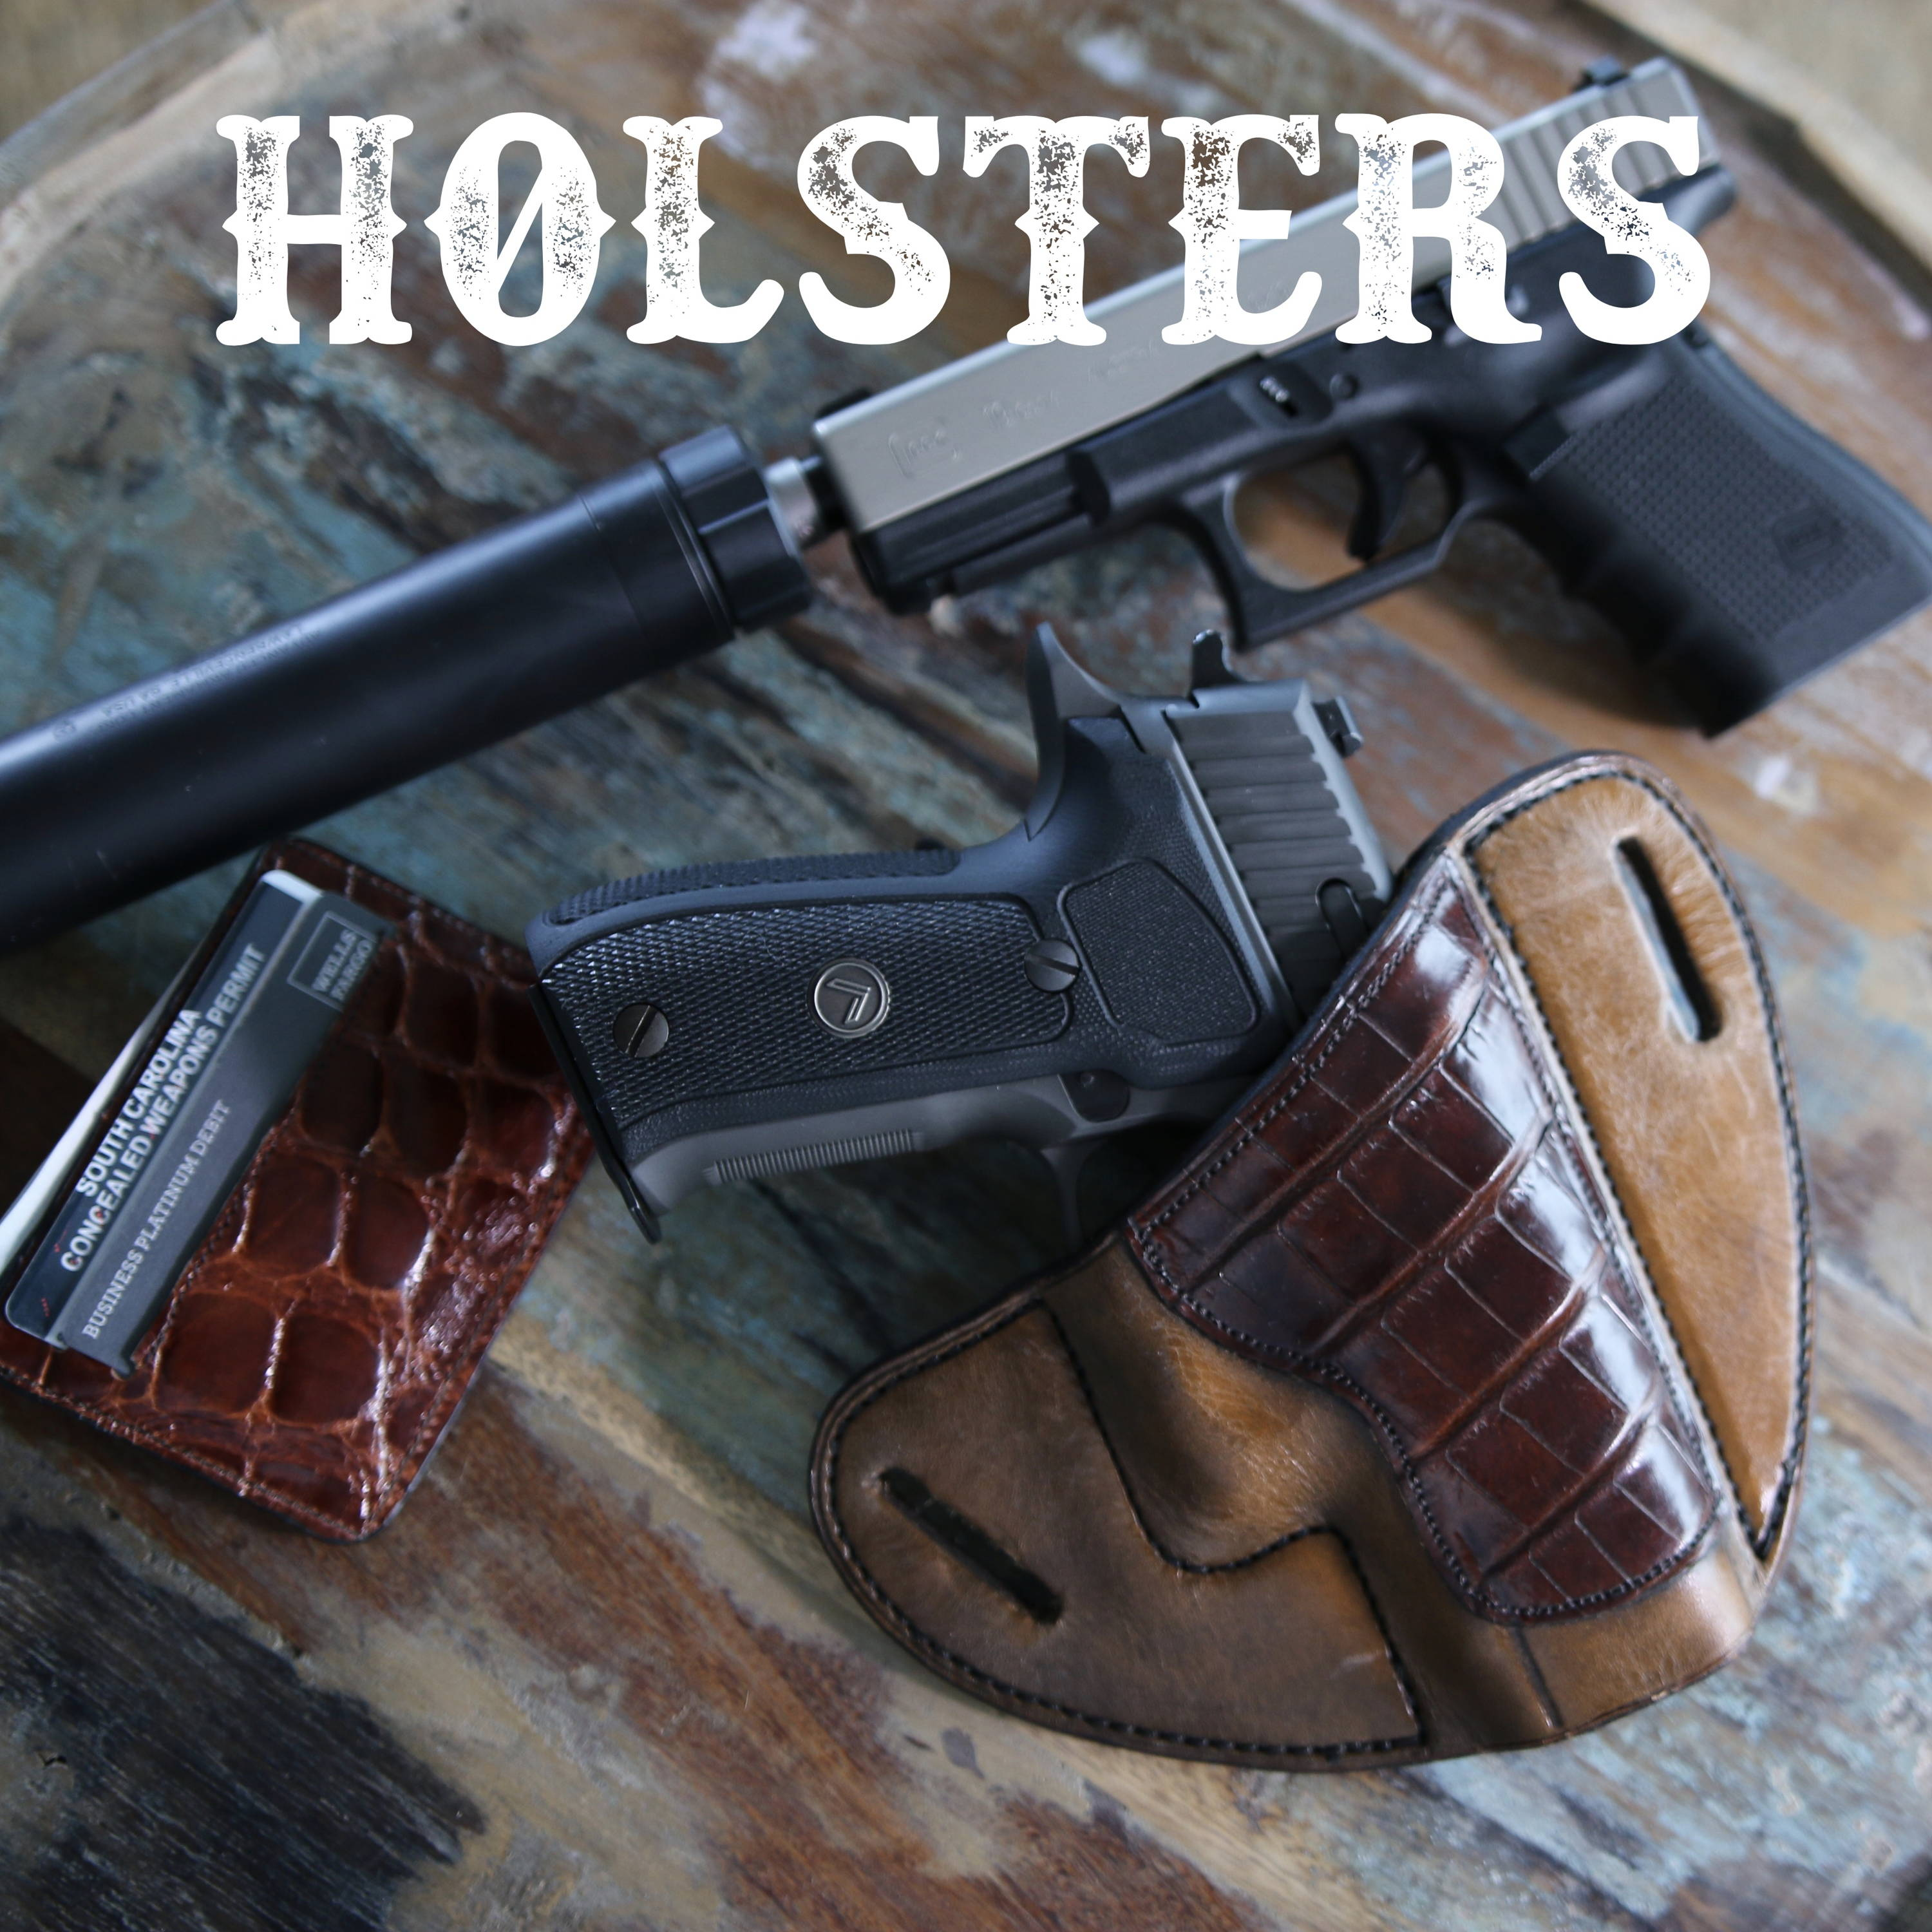 Leather Holsters - IWB and OWB Leather Holsters - 100 Year Warranty